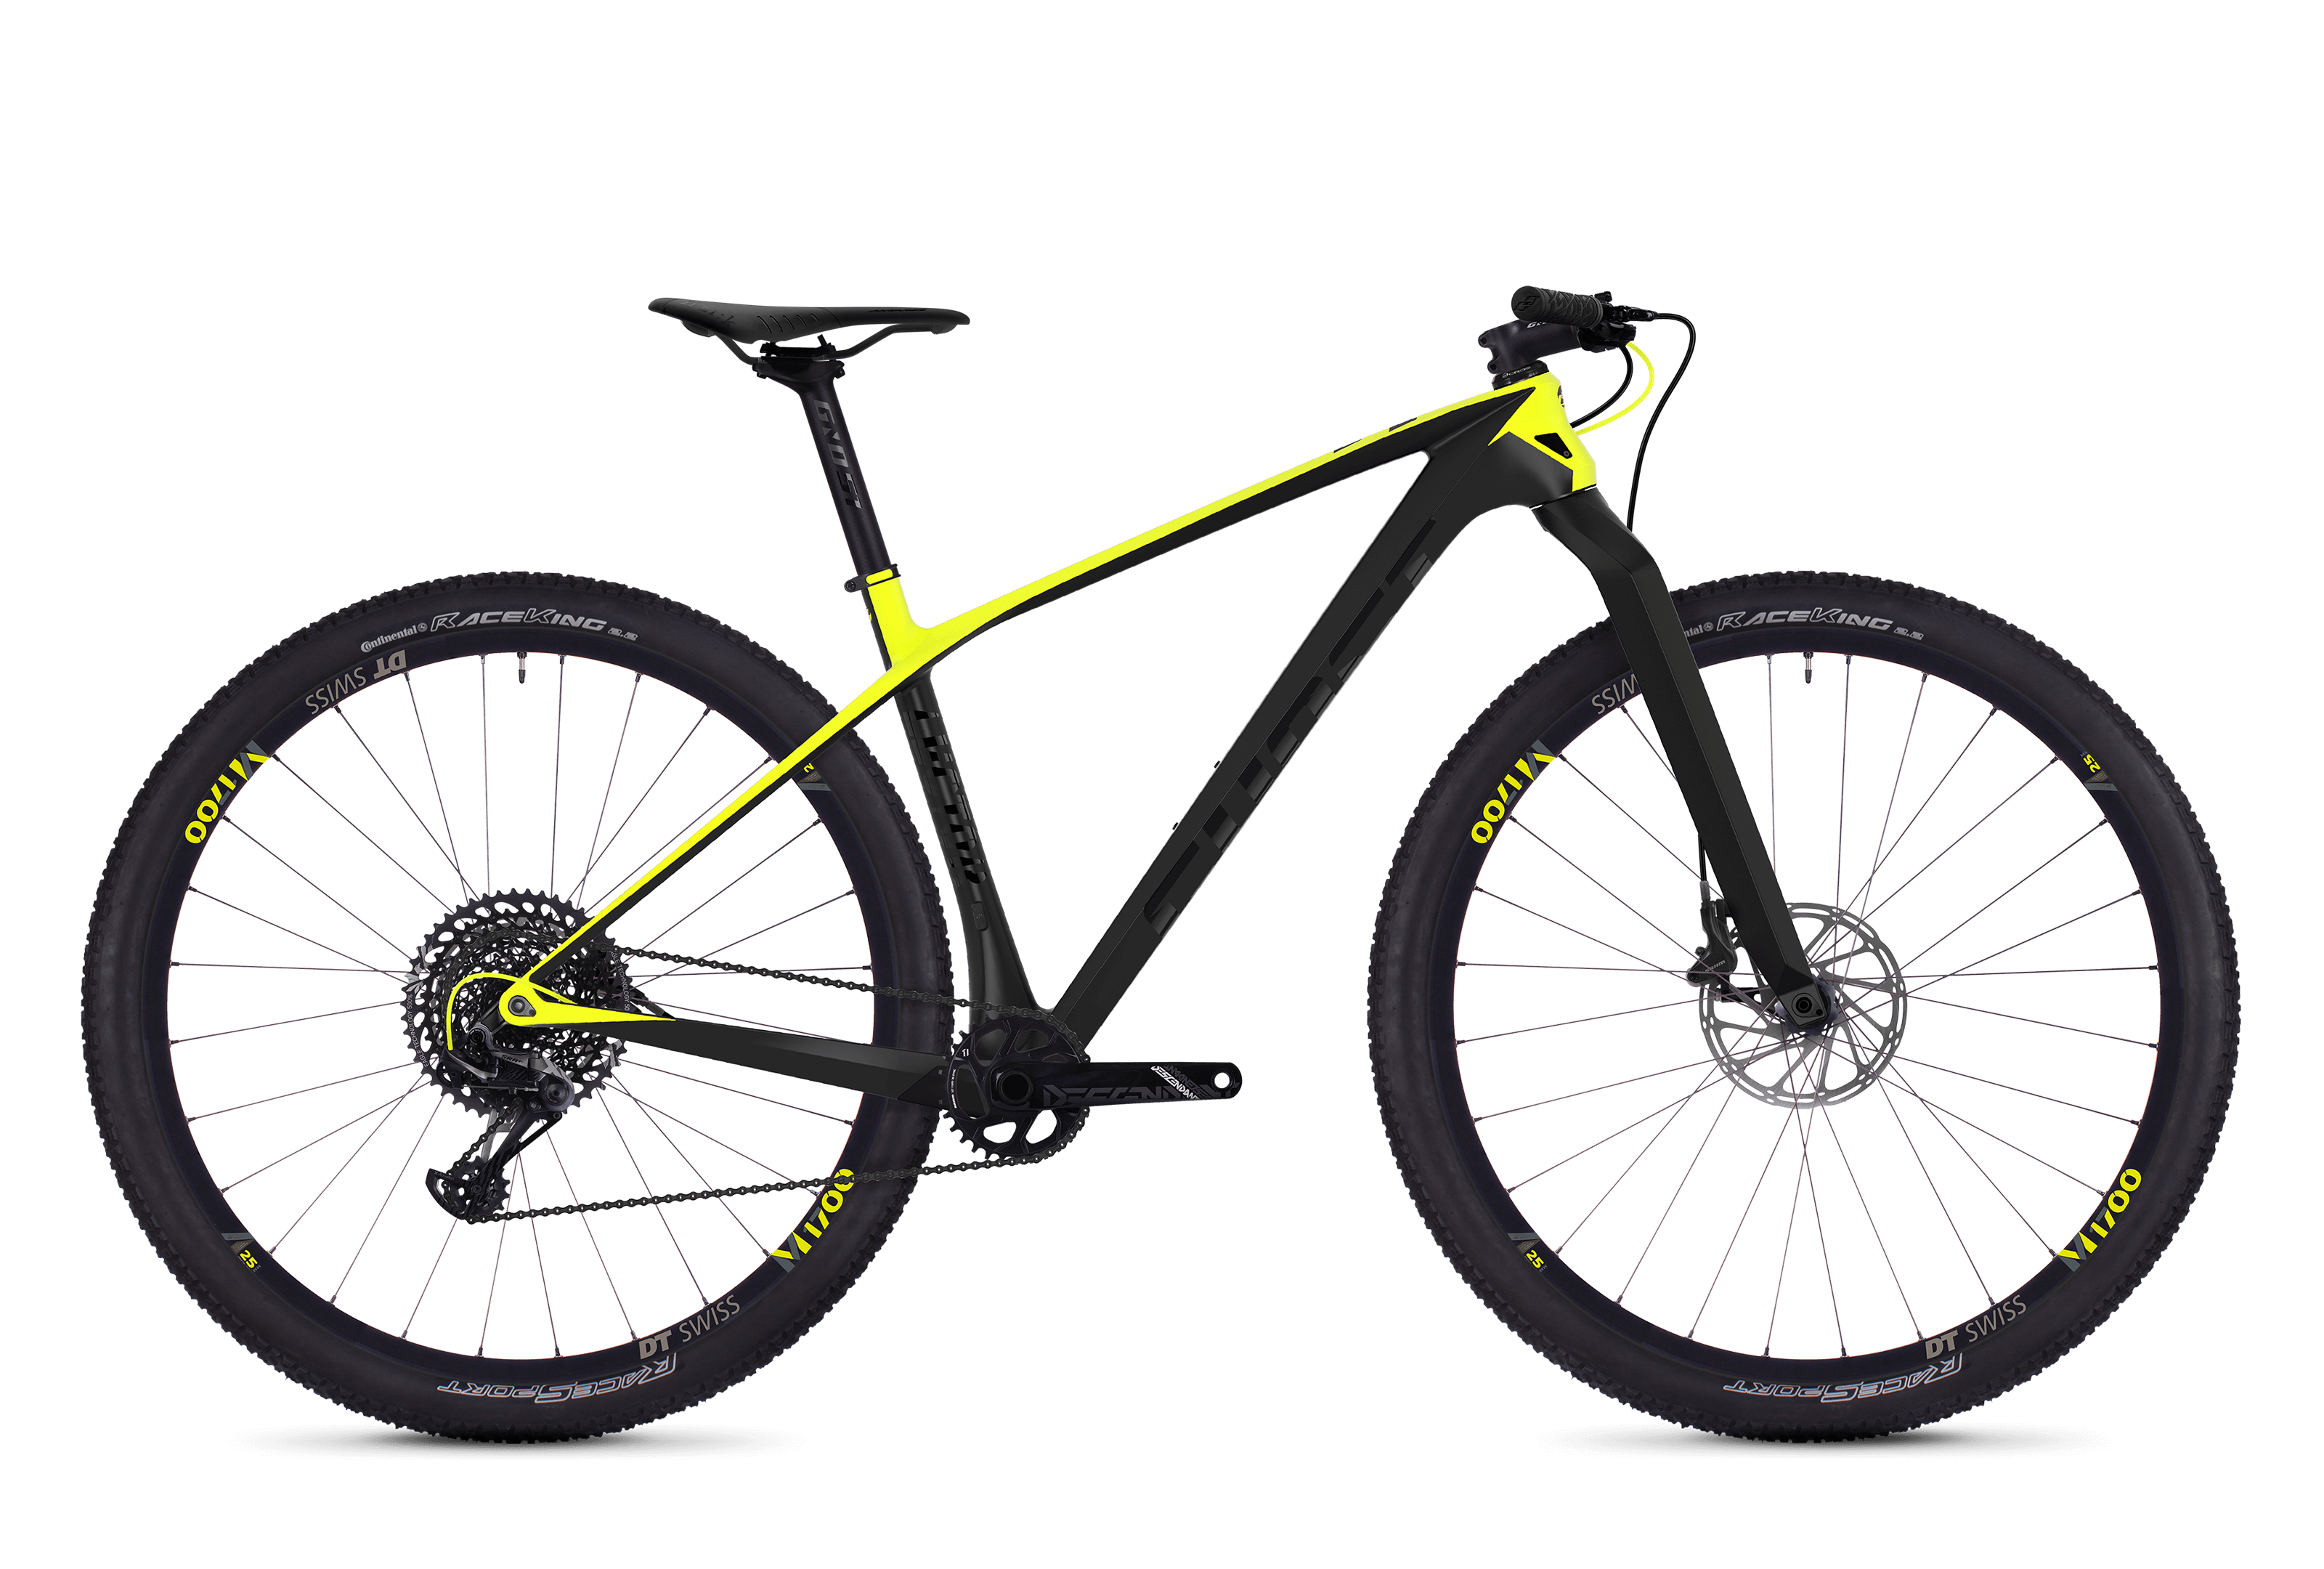 LECTOR X 8.9 UC Mountainbike MTB / Fahrrad Hardtail GHOST